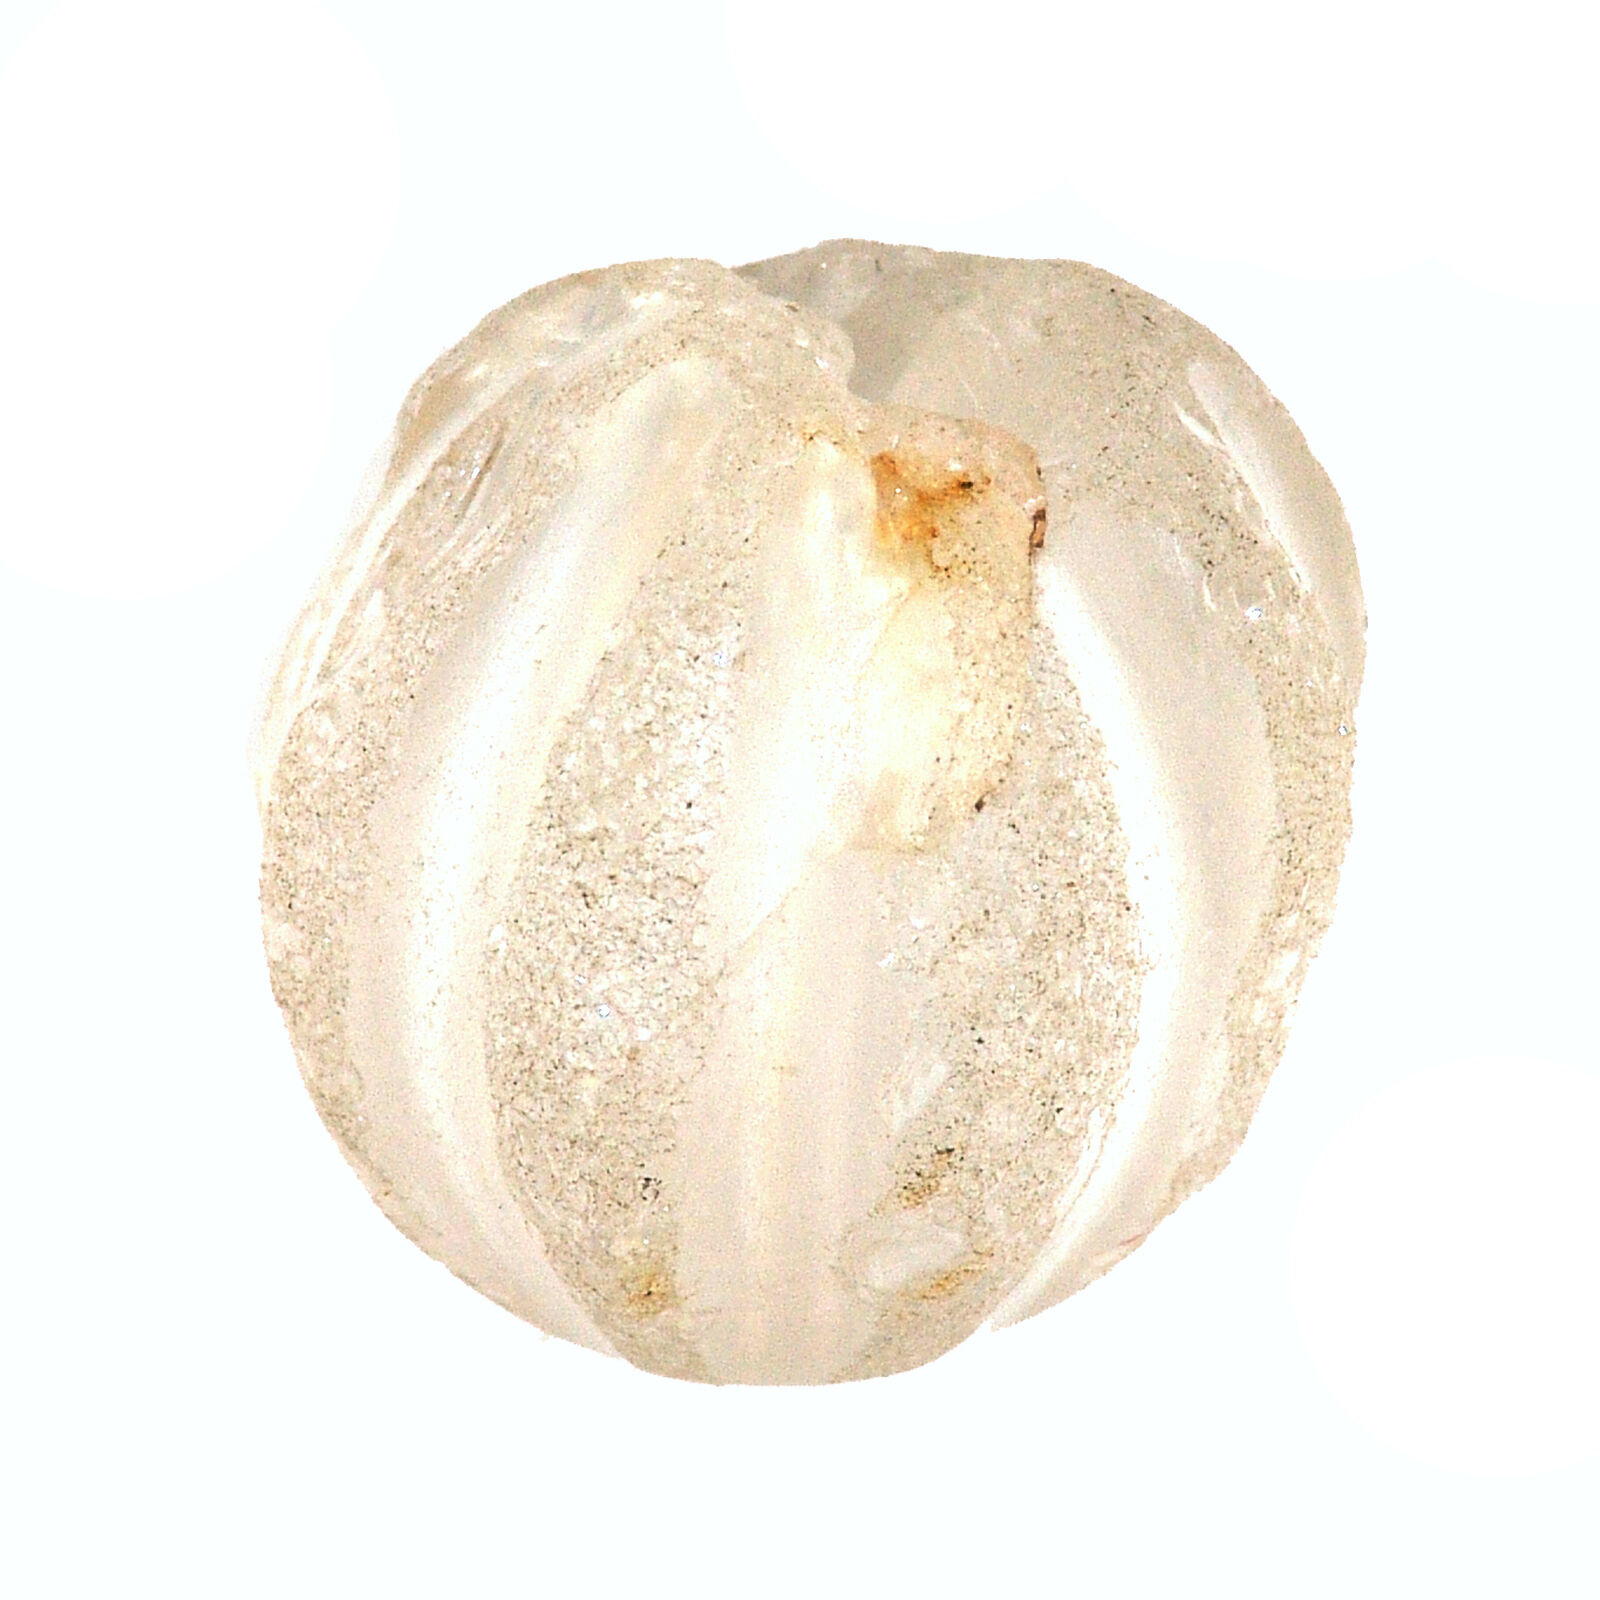 Chinese Rock Crystal Bead Mellon Shaped  -  CHINA    水晶石珠   (0676)